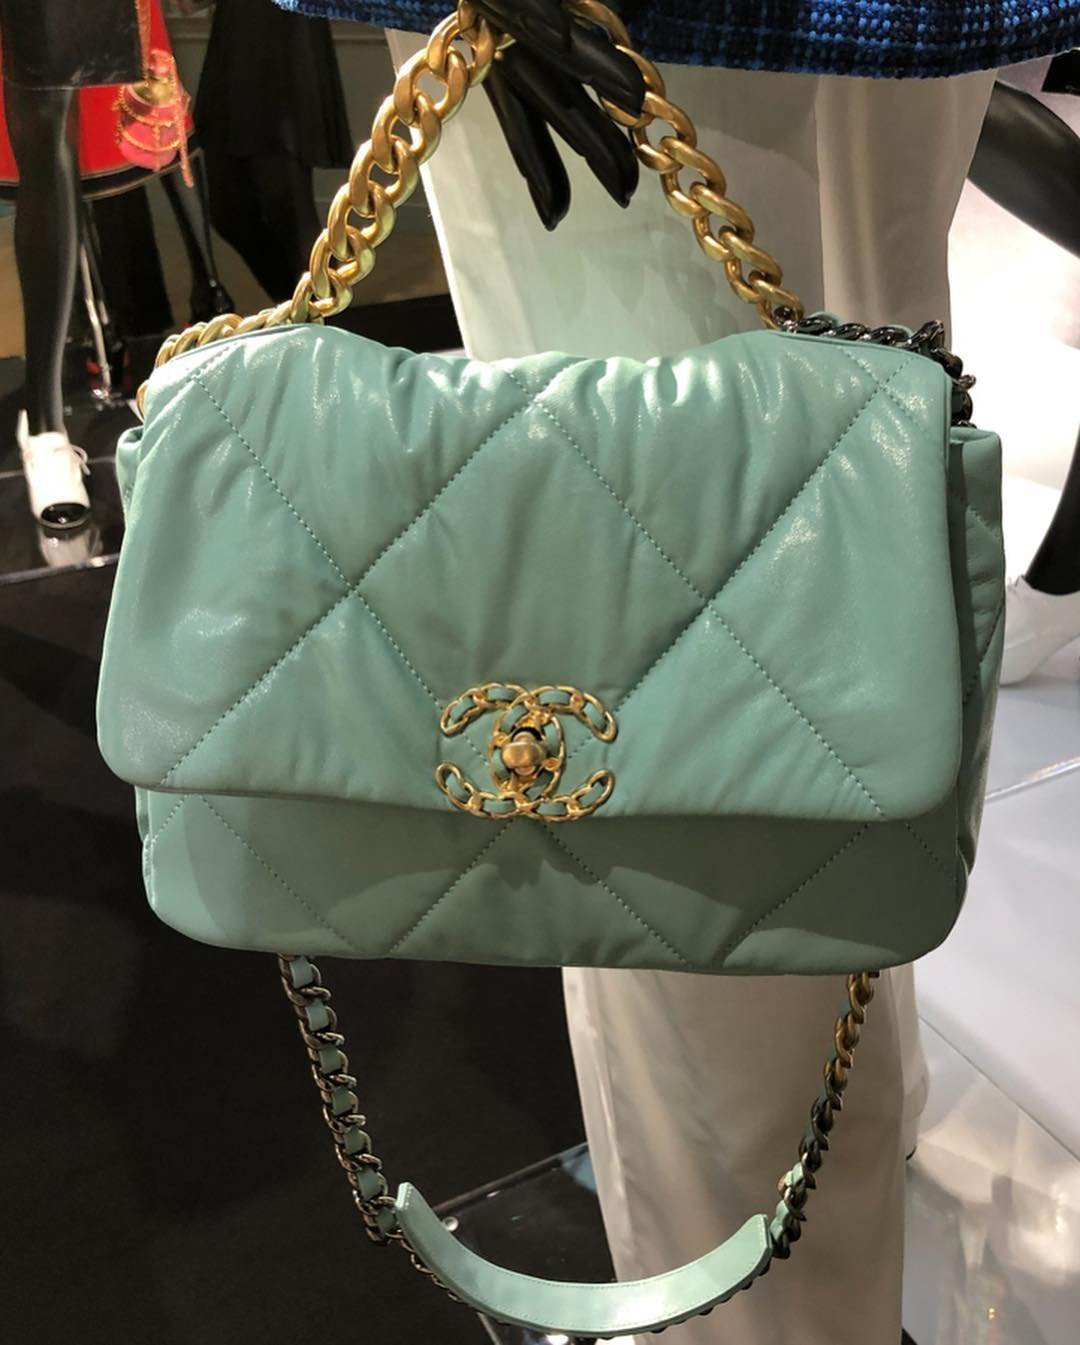 Chanel Cruise 2020 Bag Preview Bragmybag